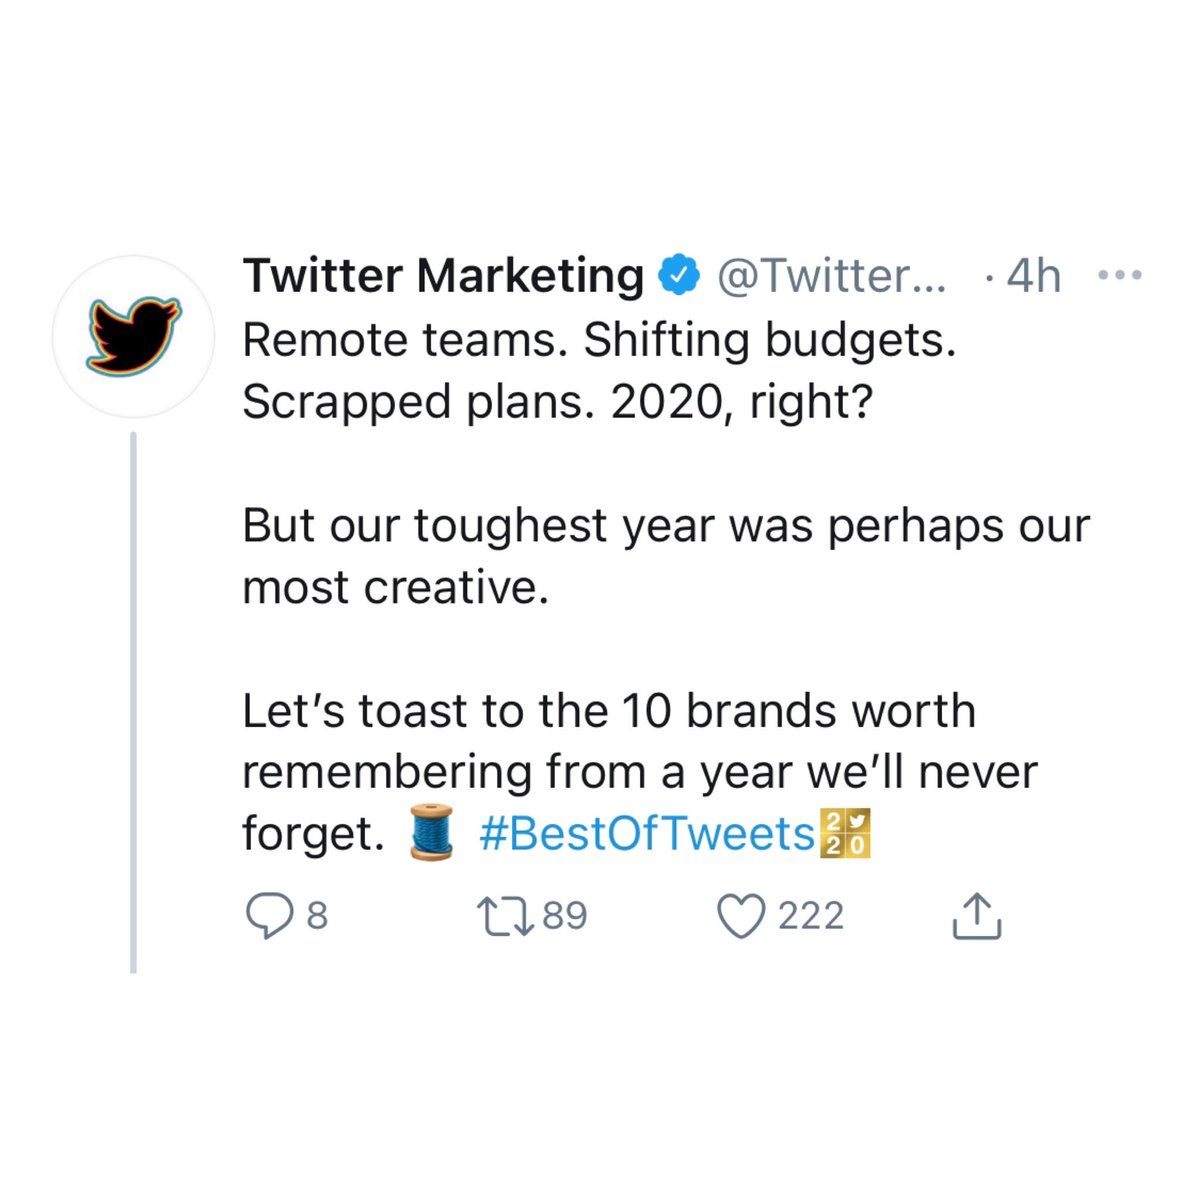 .@TwitterMktg named a campaign I worked on one of 2020's best!  V thankful @Verizon & @RGA let me play in #PayItForwardLIVE - a colossal team effort. We got to work w/ some of my all-time fav artists & even set the record for positive sentiment in Twitter Live.